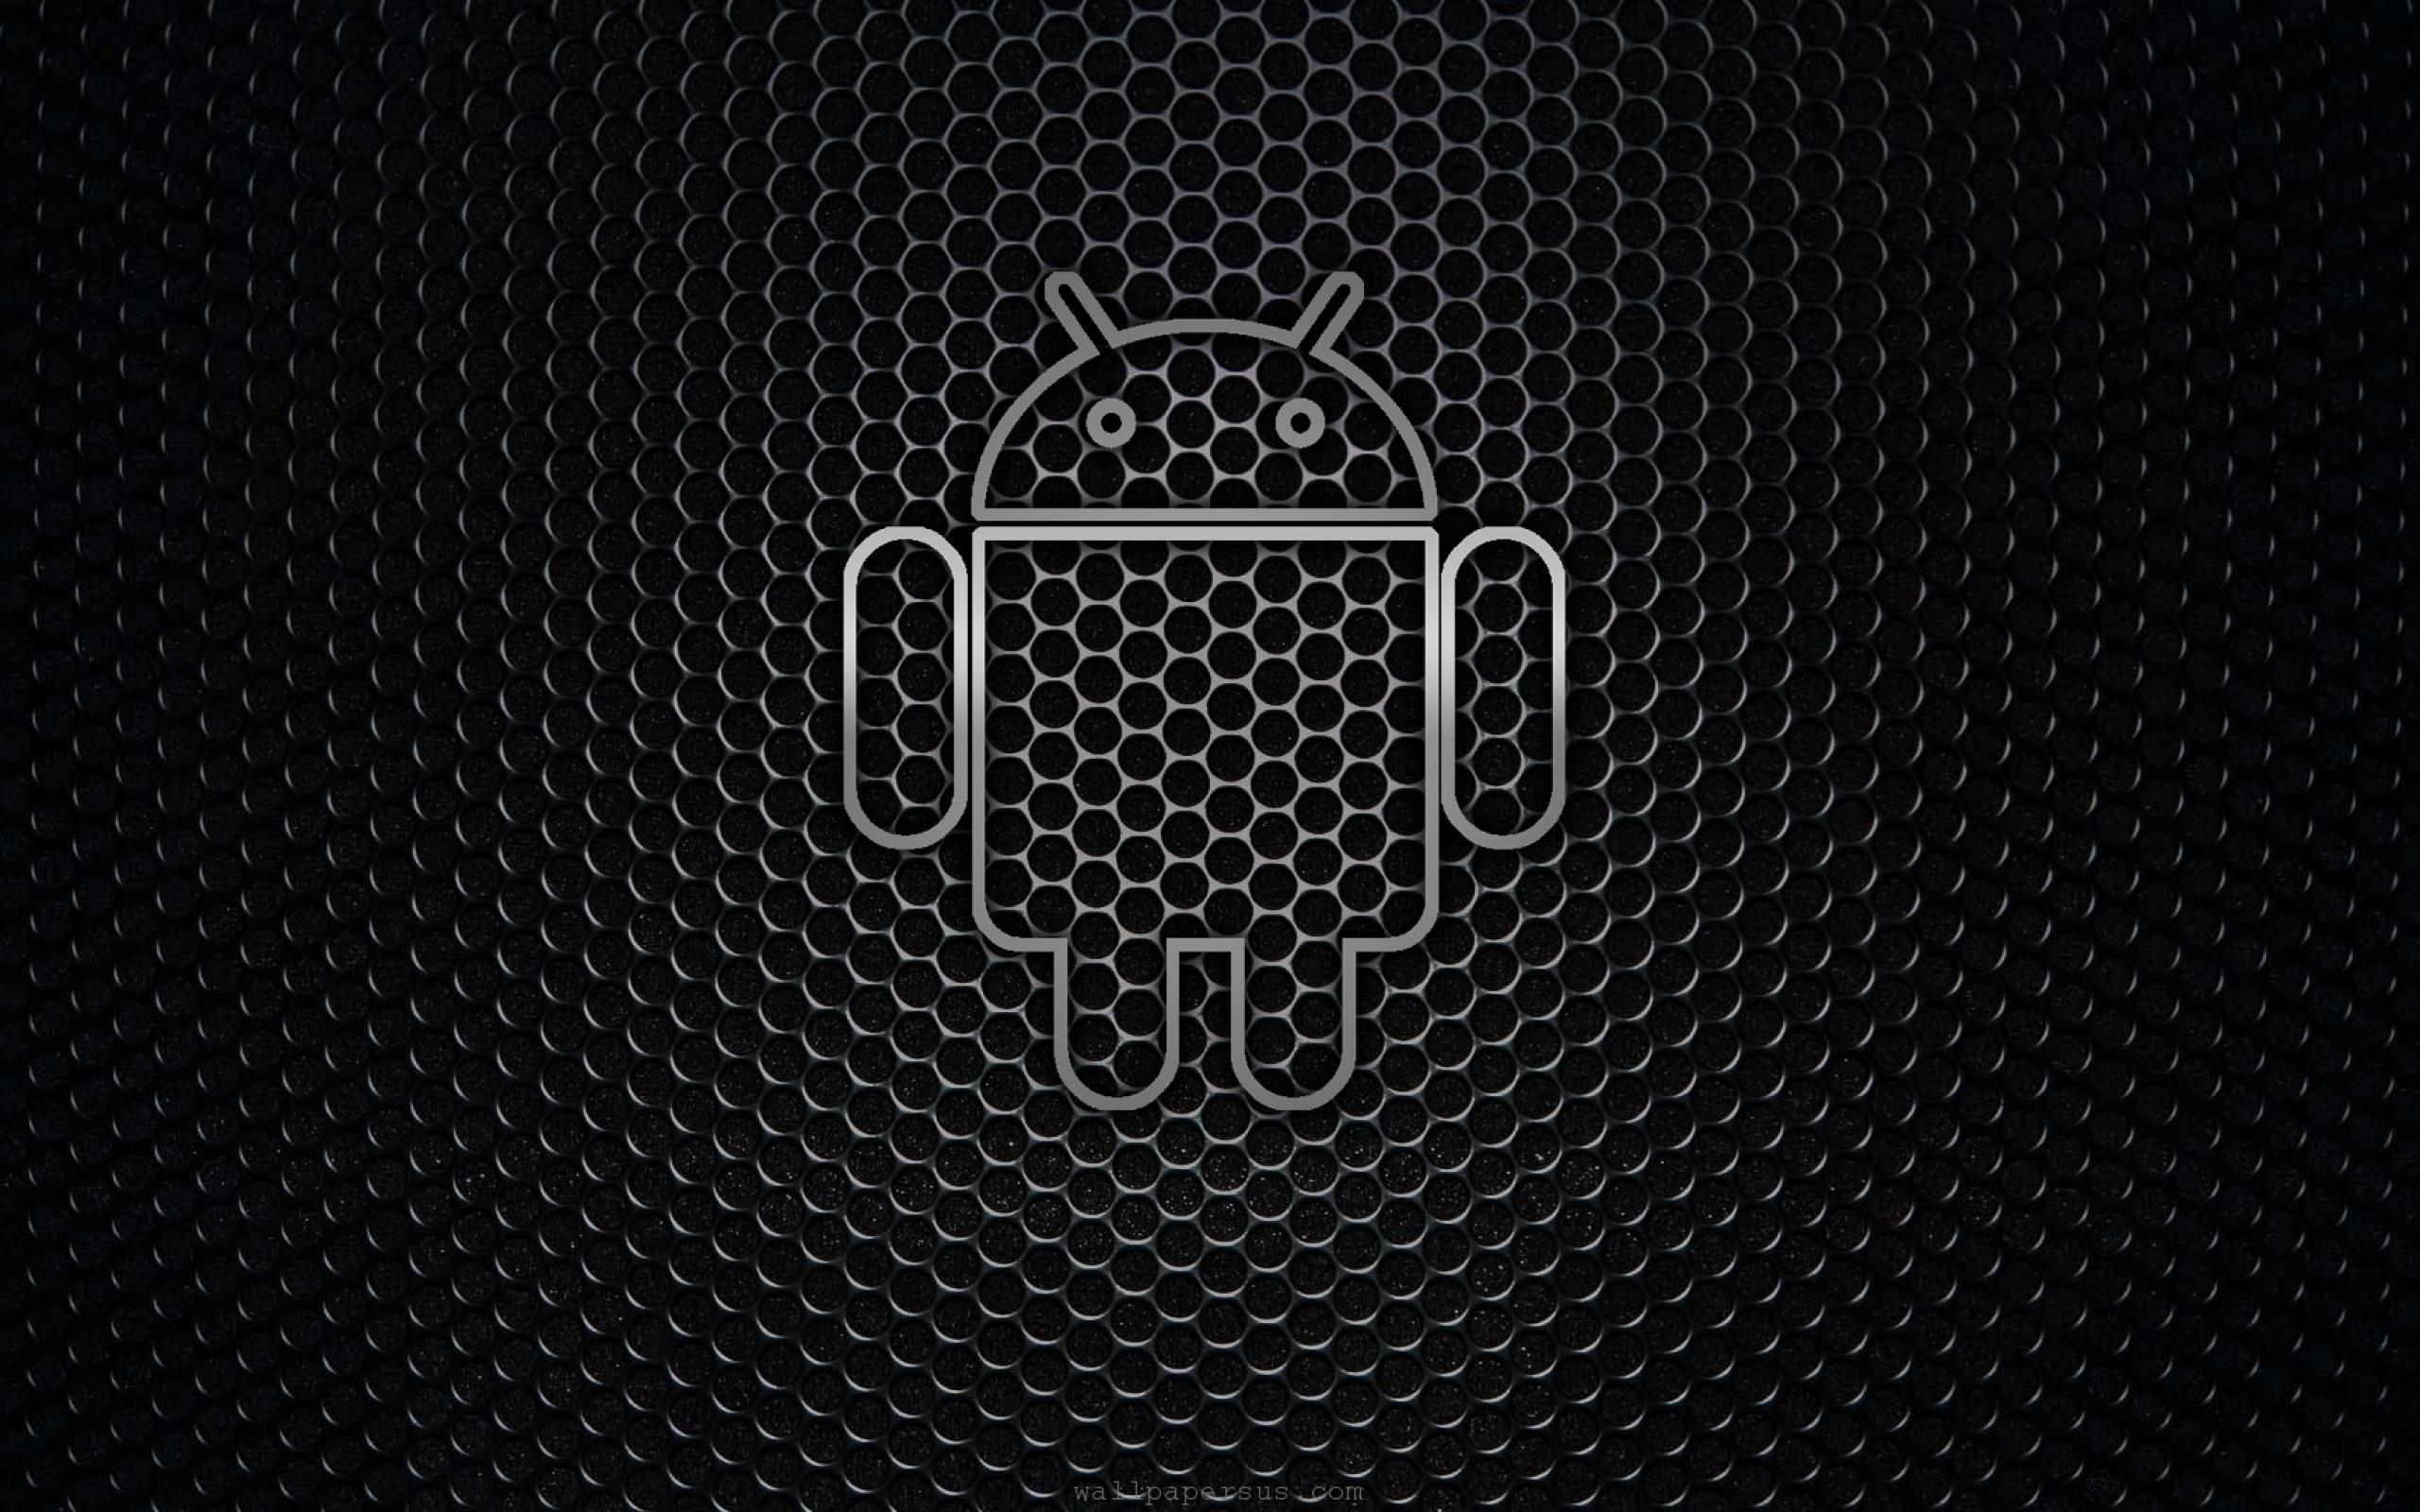 Awesome Wallpapers For Android: Awesome Android Wallpaper